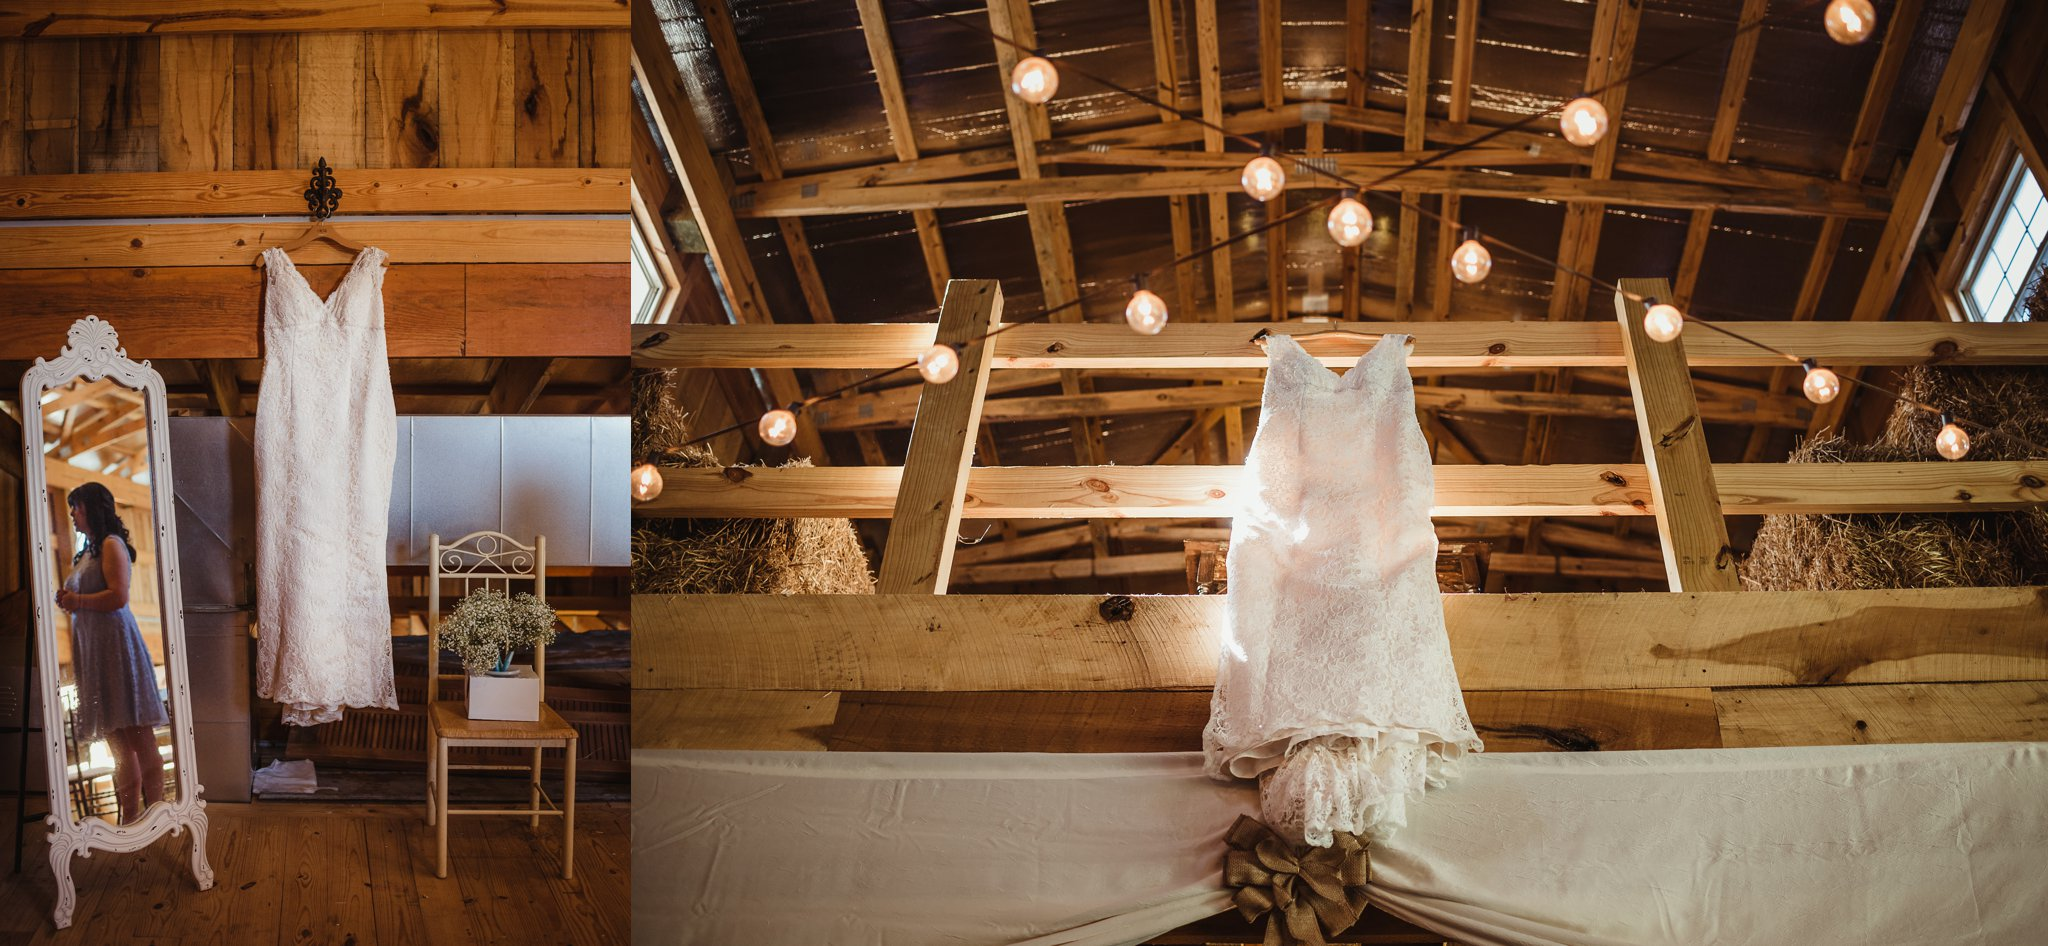 The wedding dress is hung in the barn at Carlee Farm, in Oxford, NC, taken by Rose Trail Images.